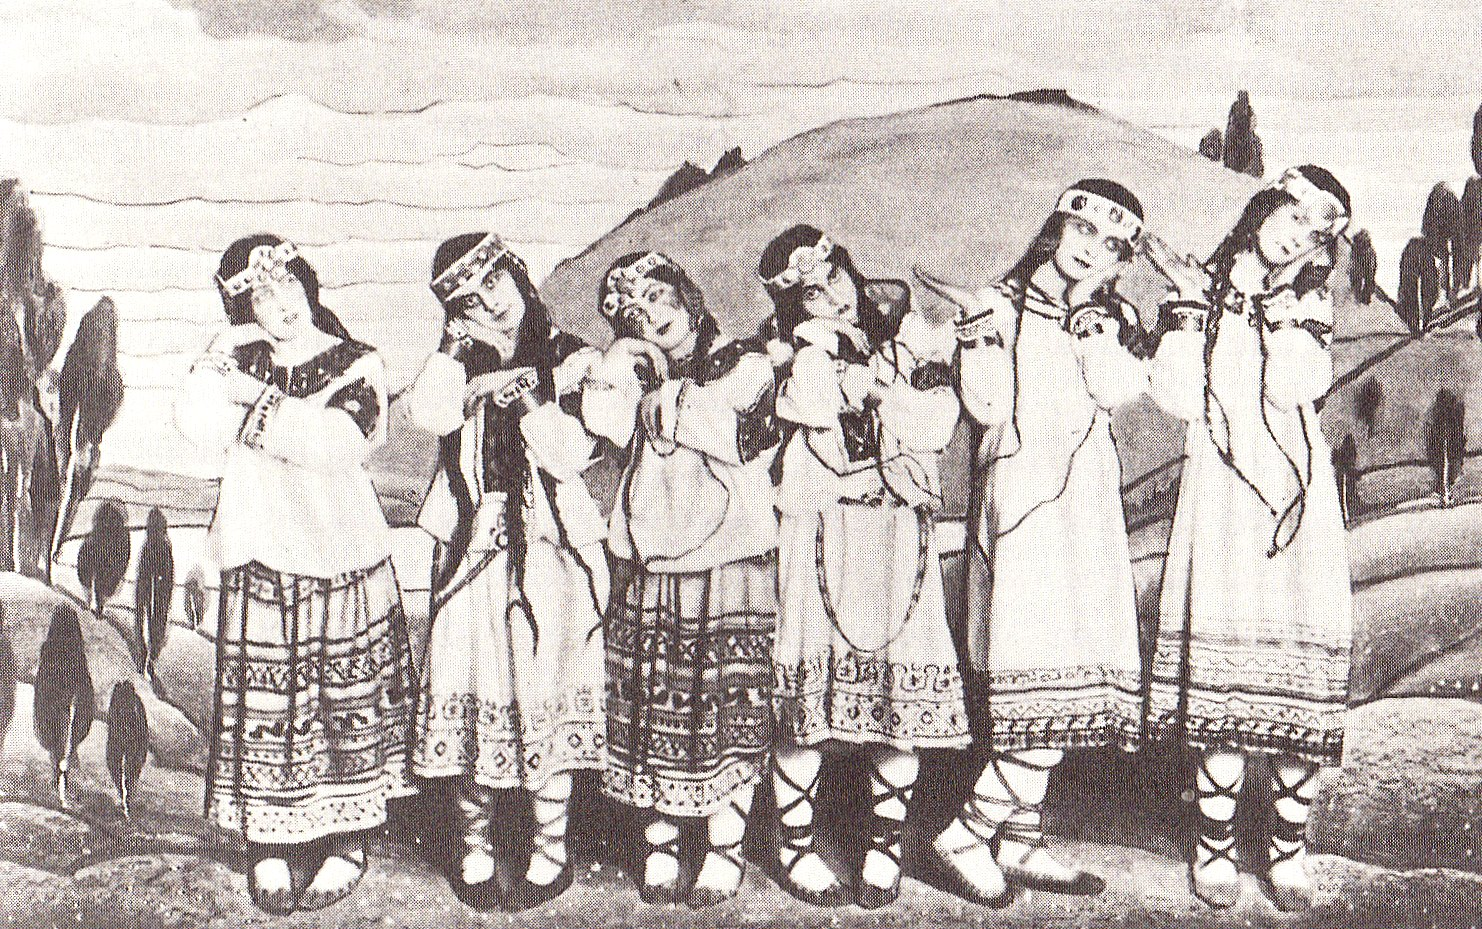 The dancers from the original performance of The Rite of Spring, featuring costumes and backdrop by Nicholas Roerich.